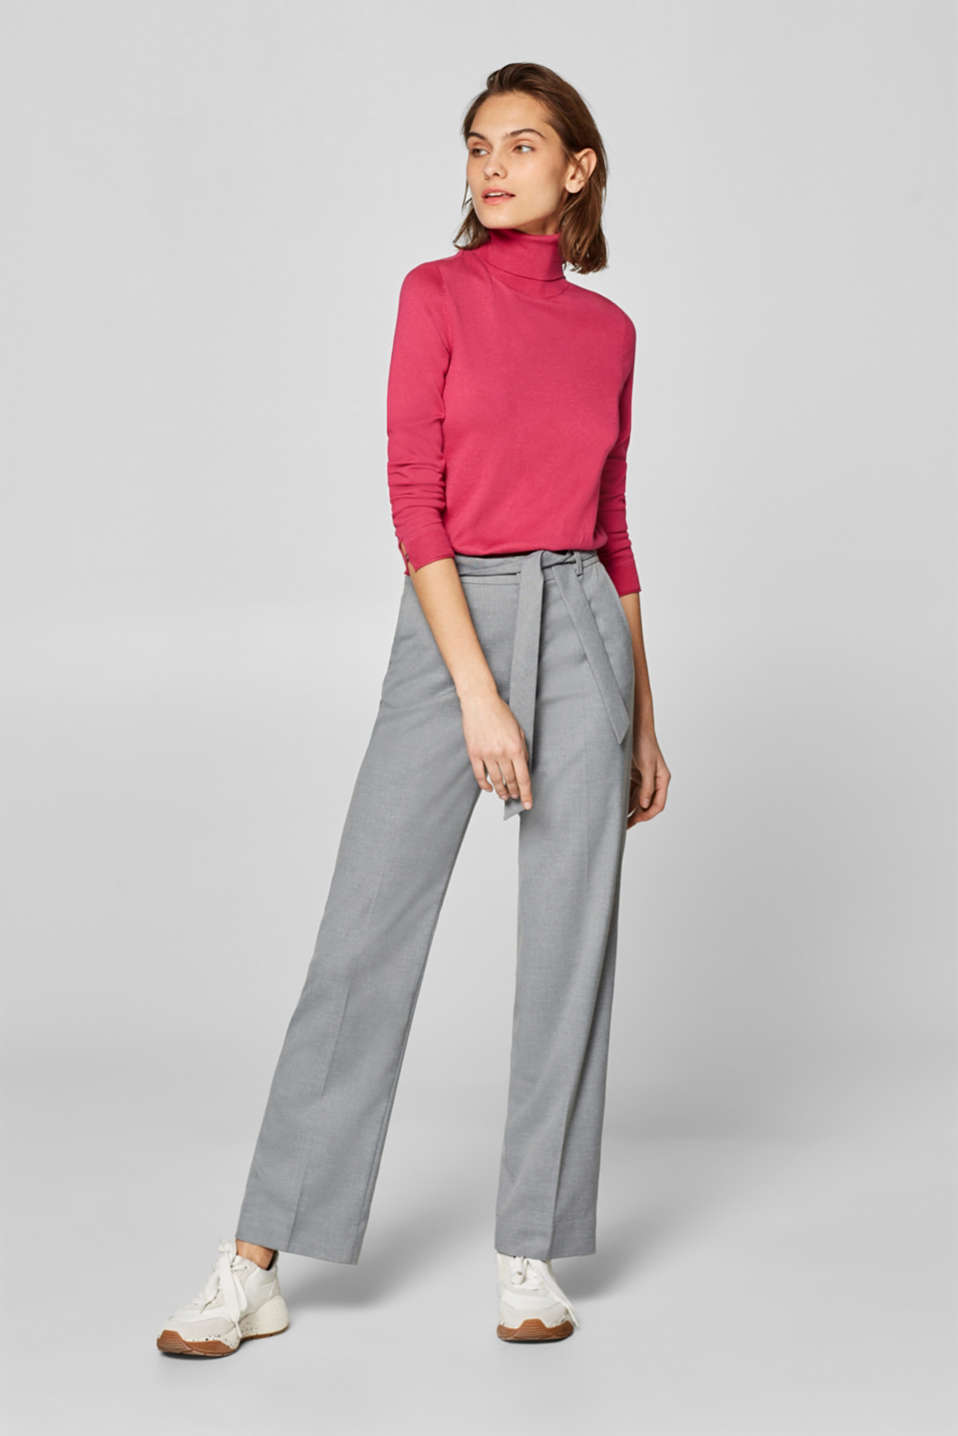 Esprit - Pantalon stretch chiné à jambes larges